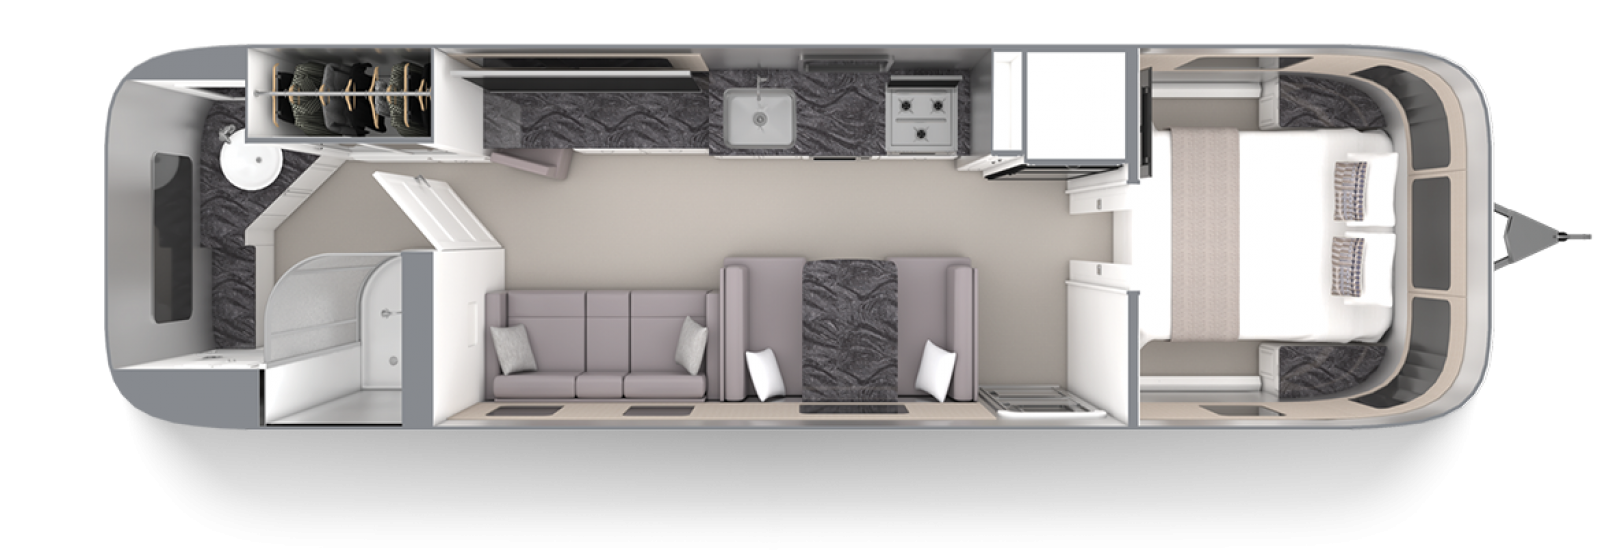 Airstream Classic 33FB Comfort White with Earl Grey Floor Plan